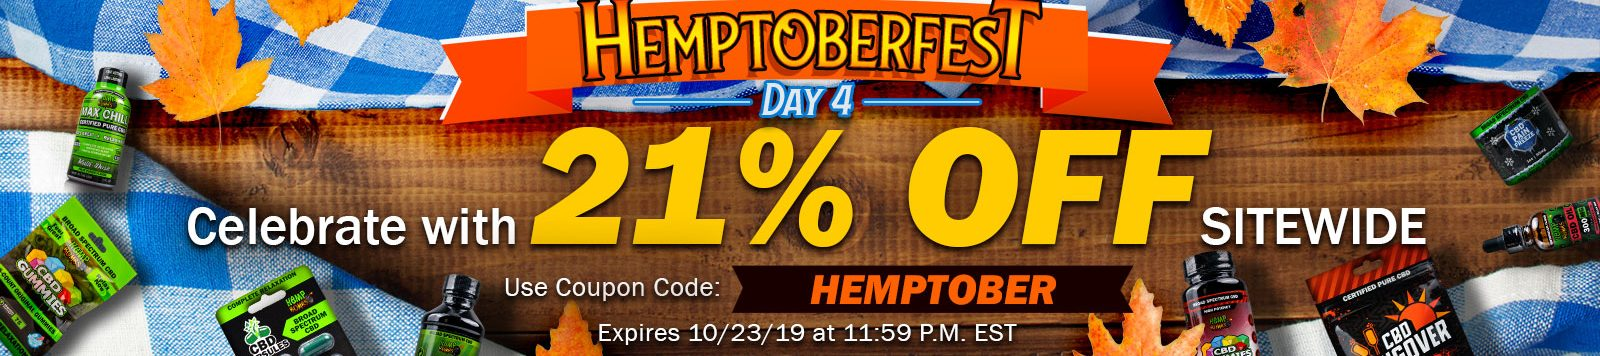 Hemptoberfest online hemp festival day 4 offer